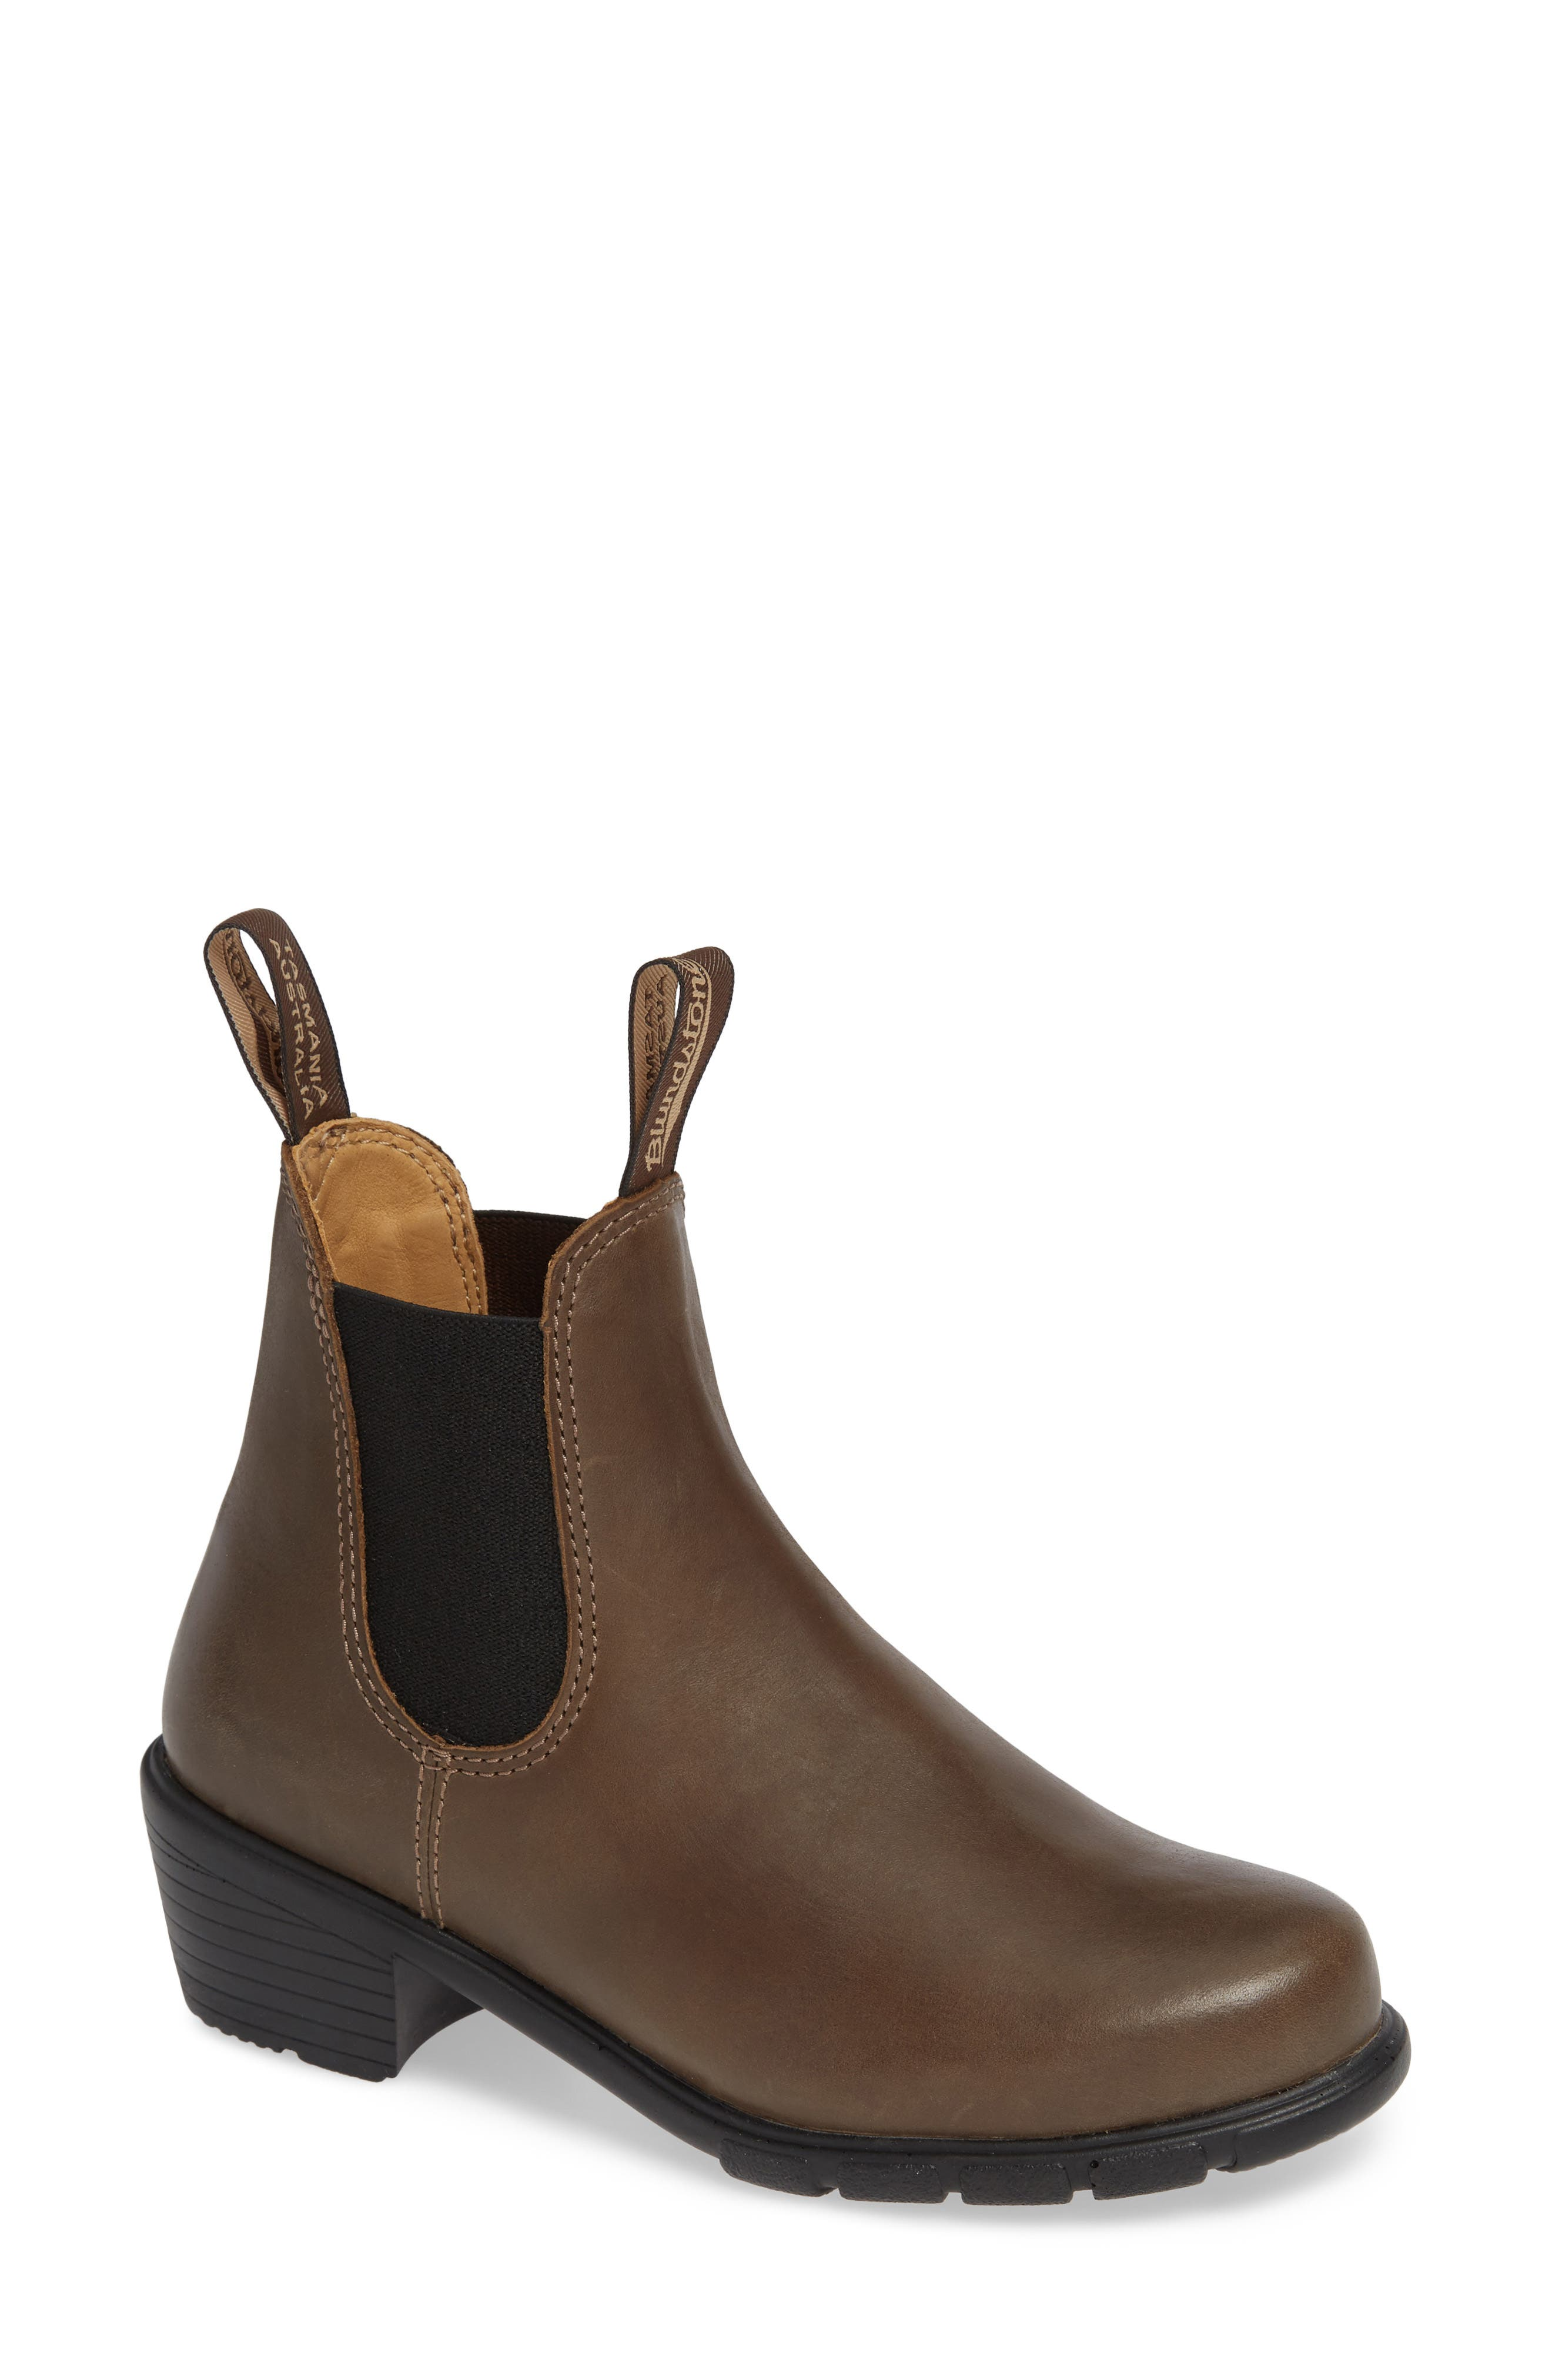 1671 Chelsea Boot,                             Main thumbnail 1, color,                             ANTIQUE TAUPE LEATHER